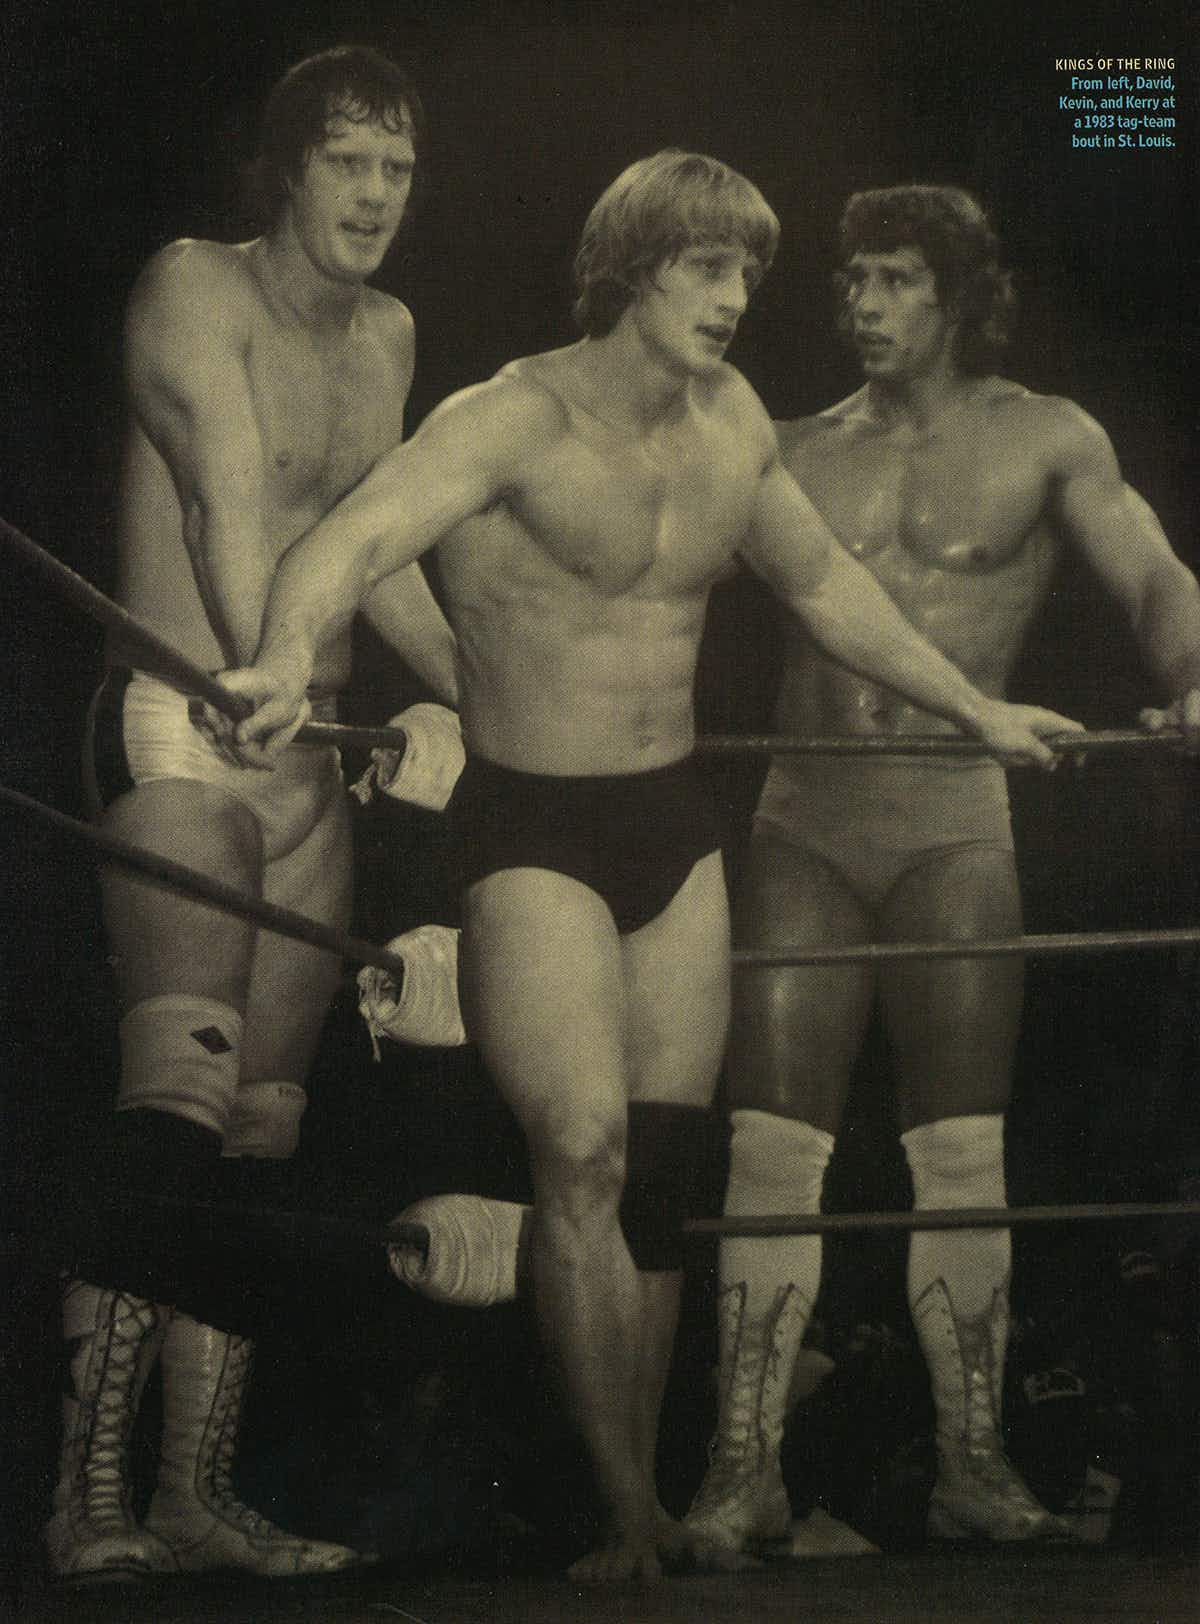 Kings of the Ring: From left, David, Kevin, and Kerry at a 1983 tag-team bout in St. Louis.